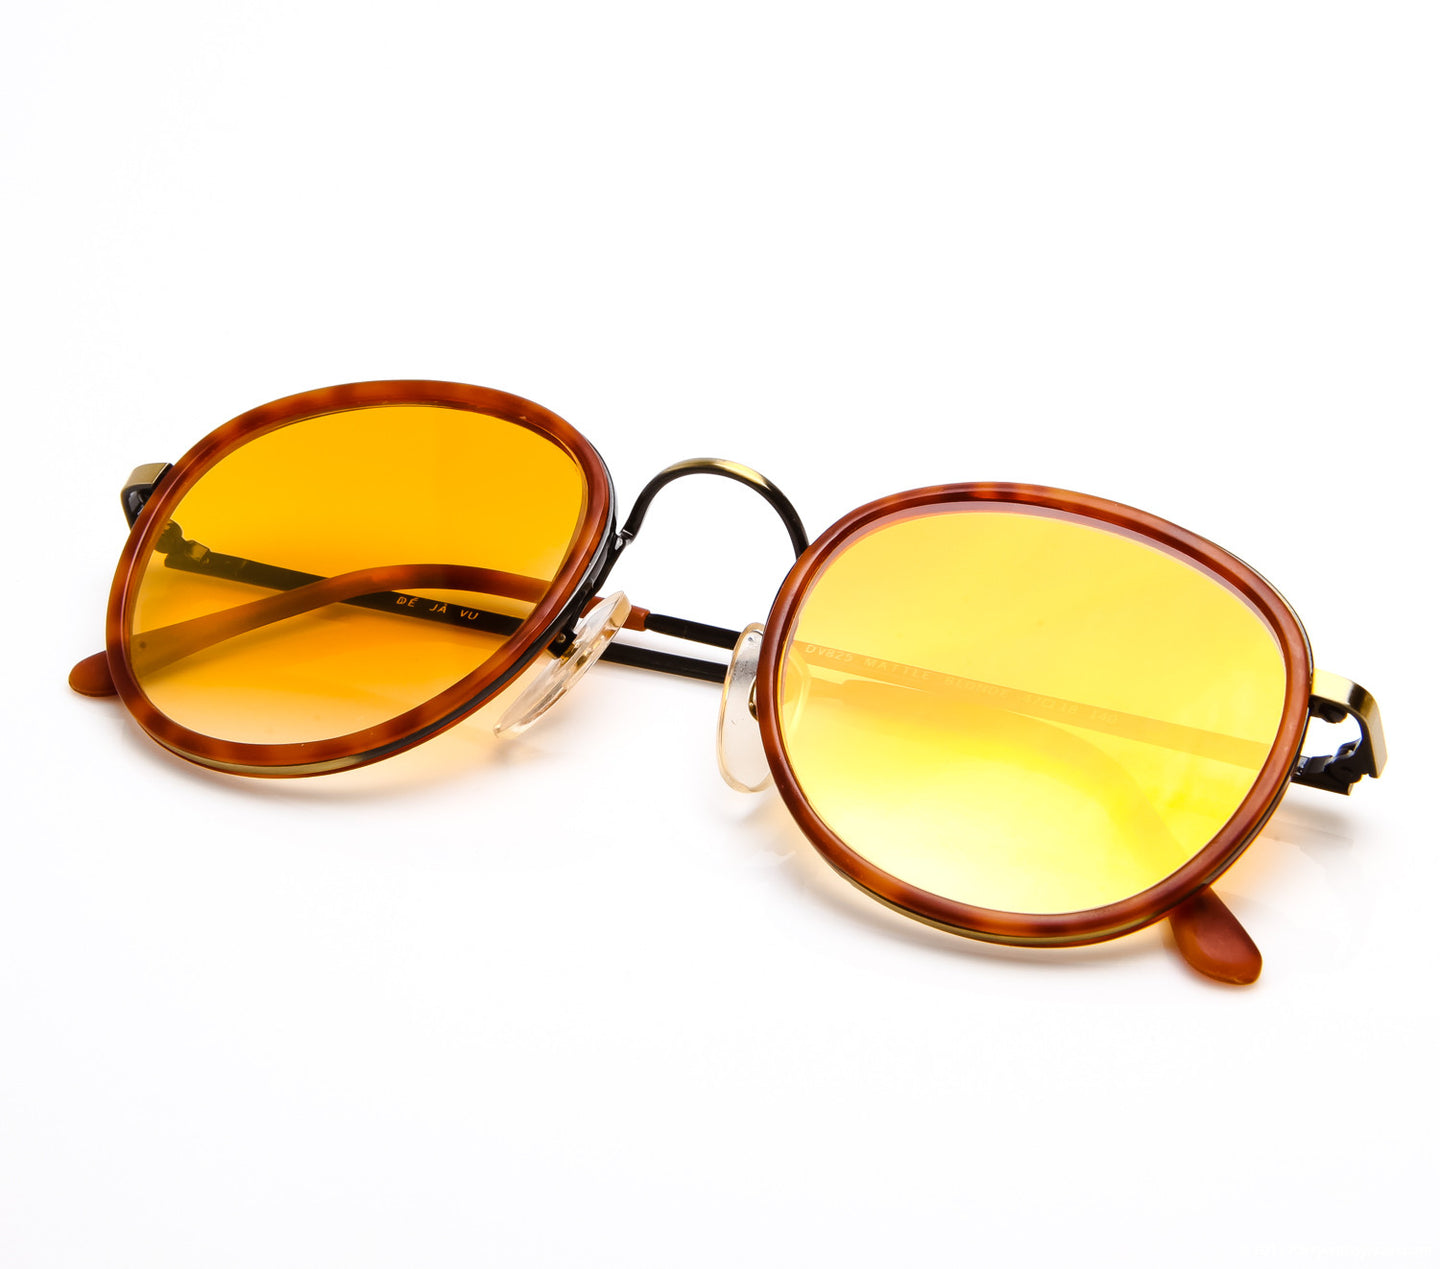 Soho (Bright Orange) thumbnail, VF by Vintage Frames , glasses frames, eyeglasses online, eyeglass frames, mens glasses, womens glasses, buy glasses online, designer eyeglasses, vintage sunglasses, retro sunglasses, vintage glasses, sunglass, eyeglass, glasses, lens, vintage frames company, vf